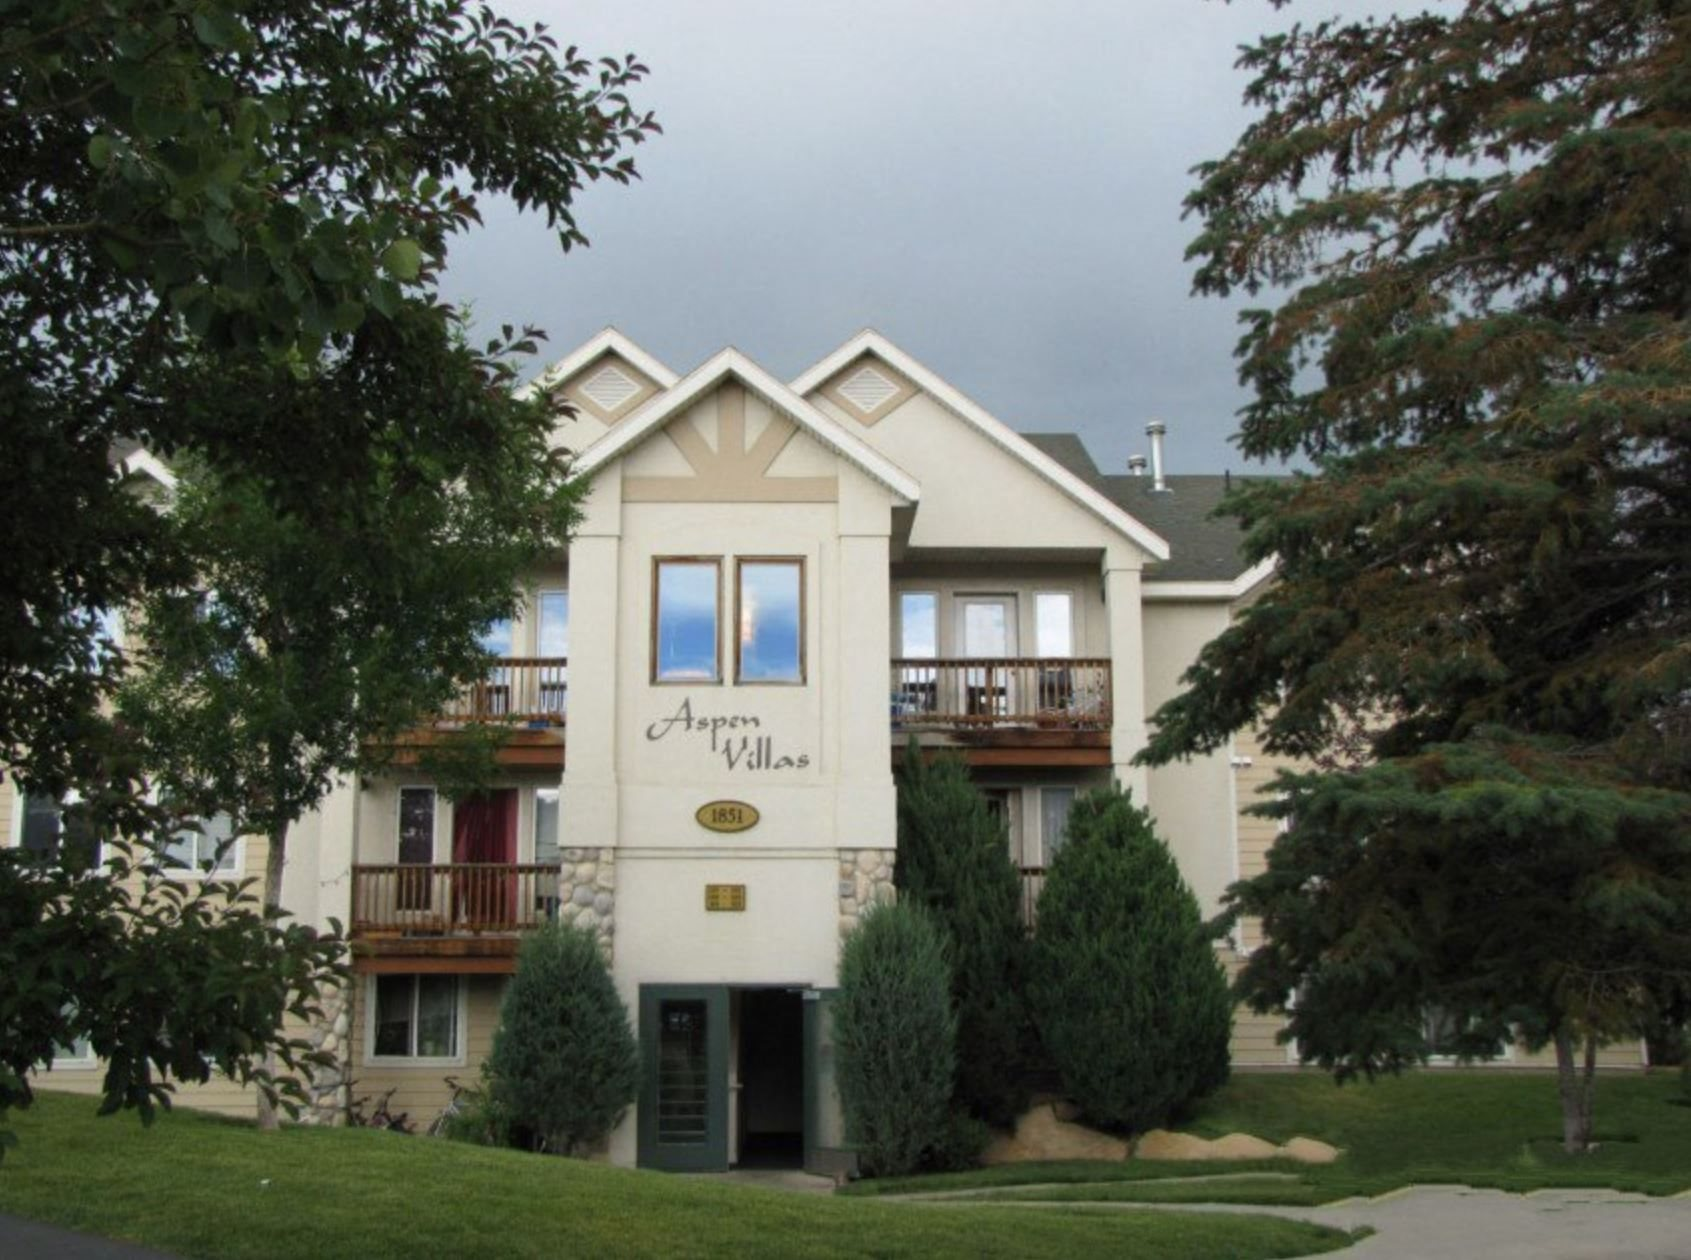 Aspen Villas Apartments Exterior Building and Trees